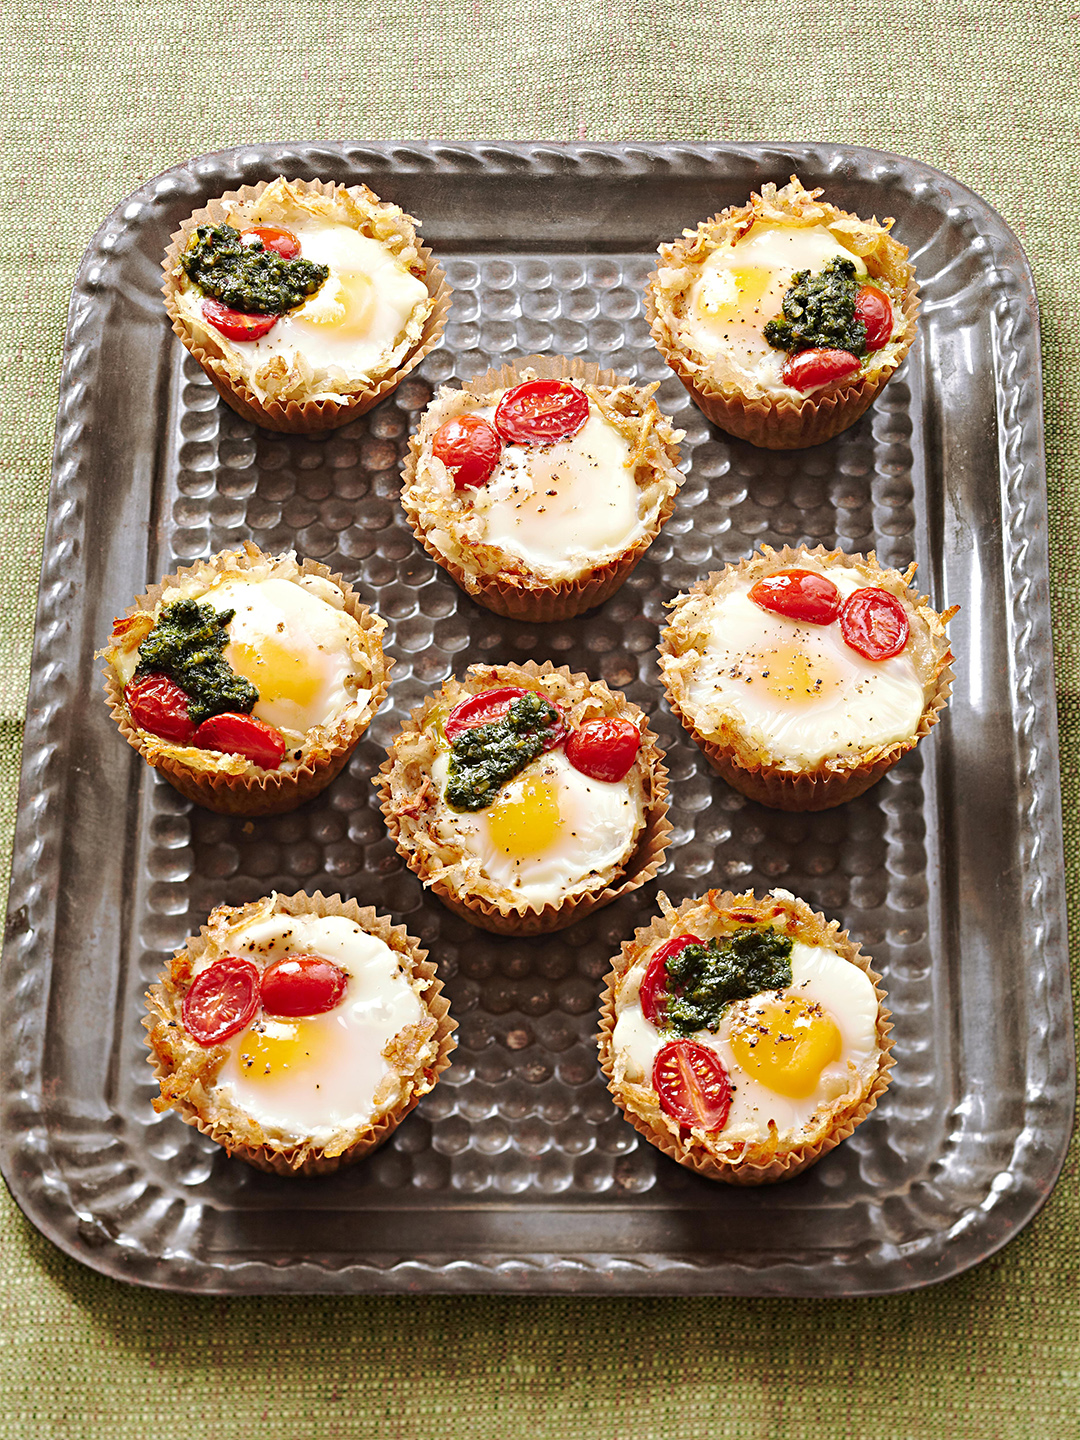 Birdie in the Basket muffins with egg and cherry tomato and spinach